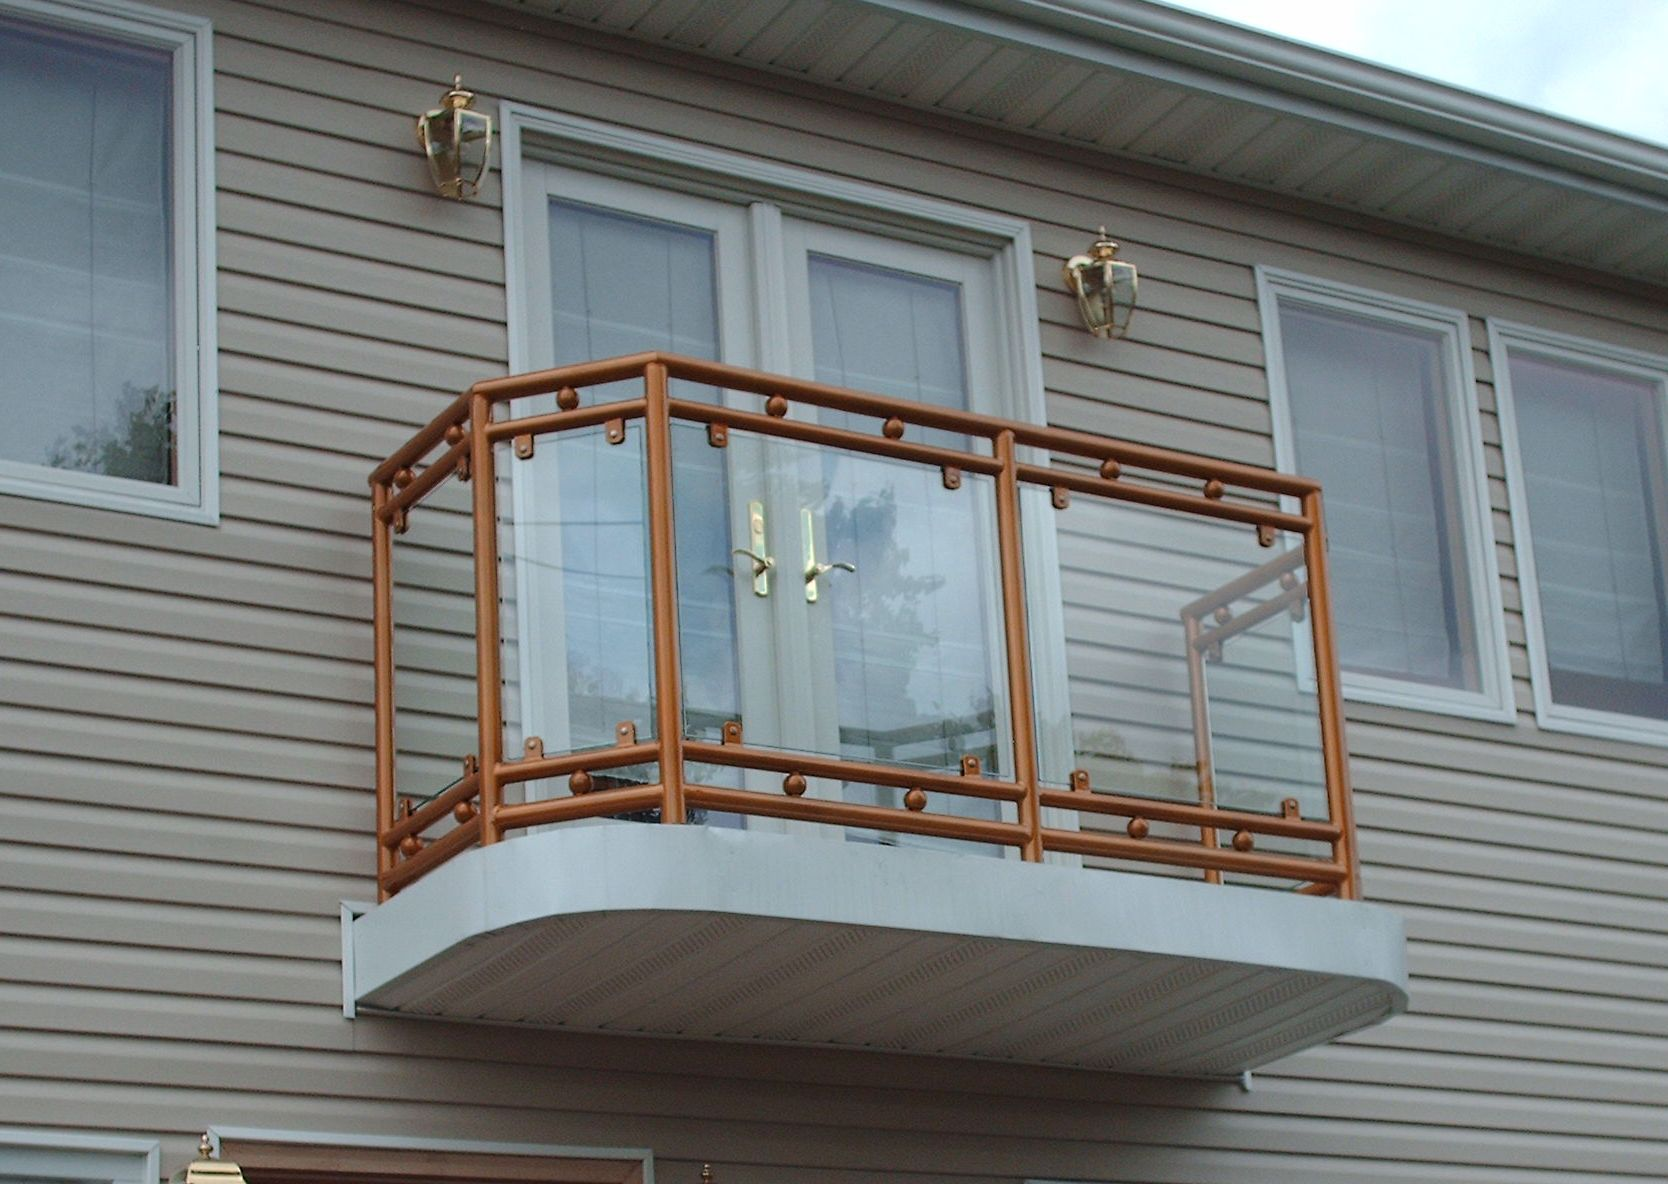 Guardian gate balcony balconies pinterest balcony for Balcony of house